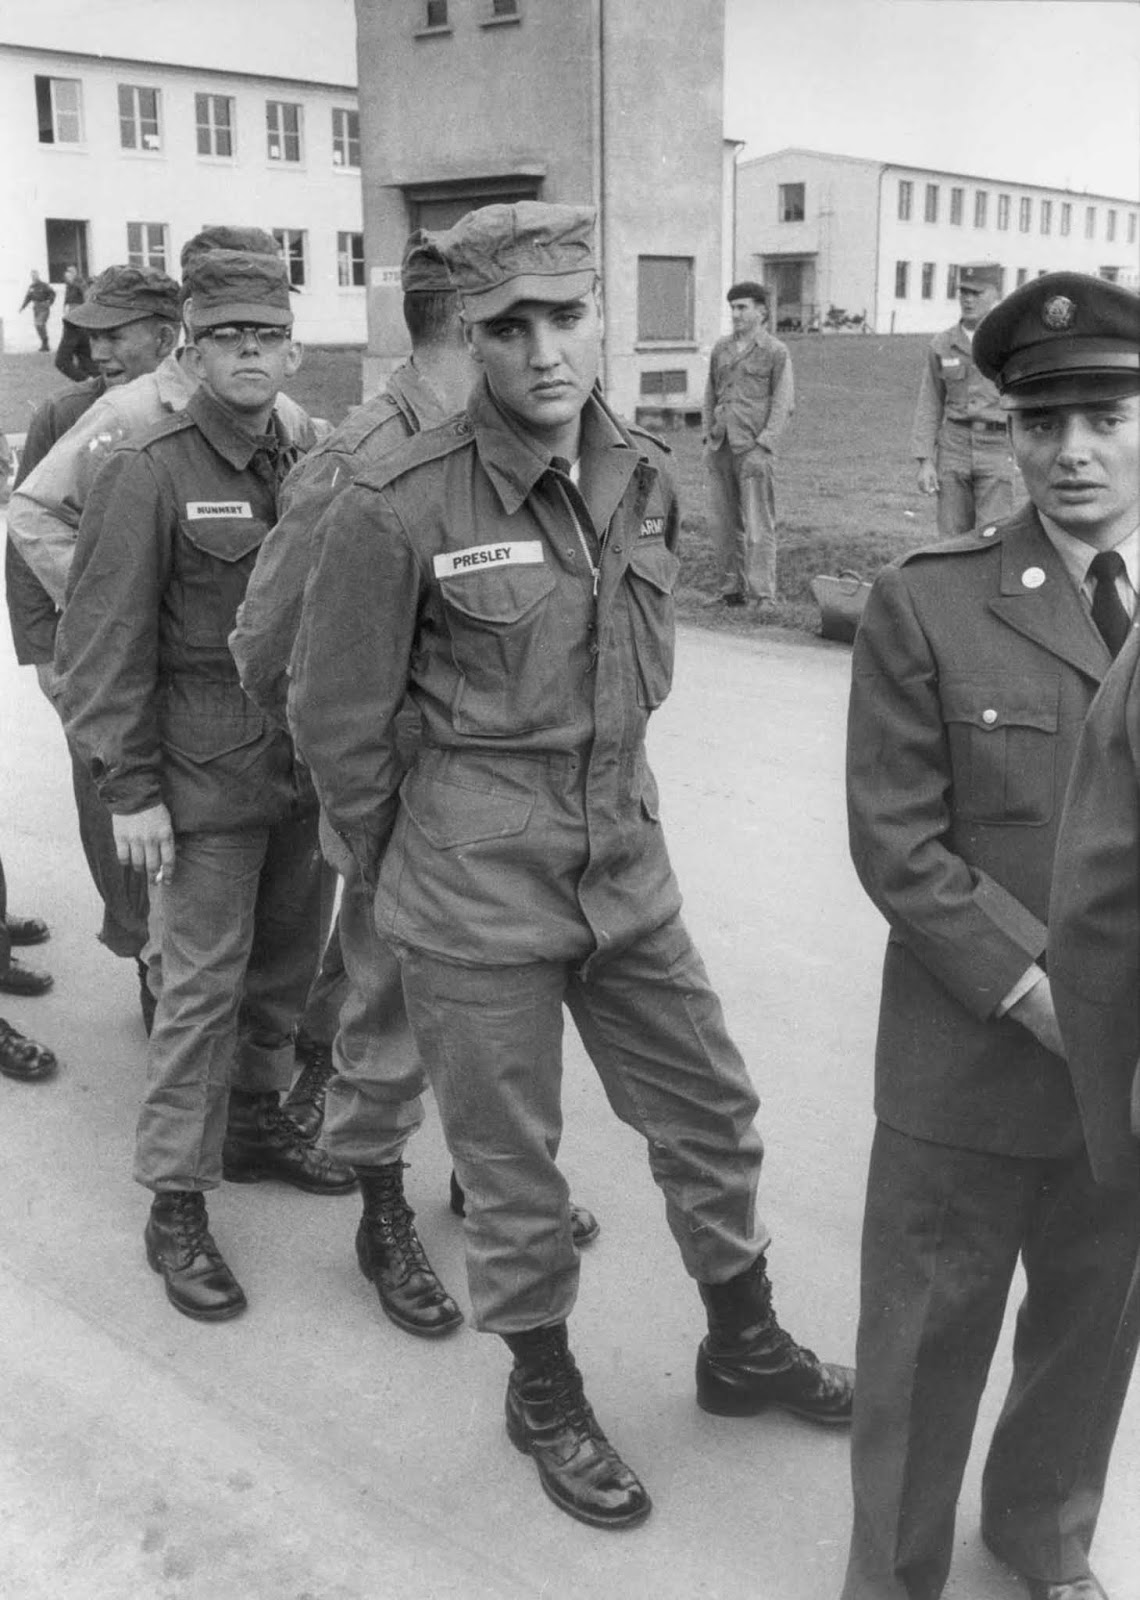 Presley stands in line with other enlisted men and officers on a military base, Germany.